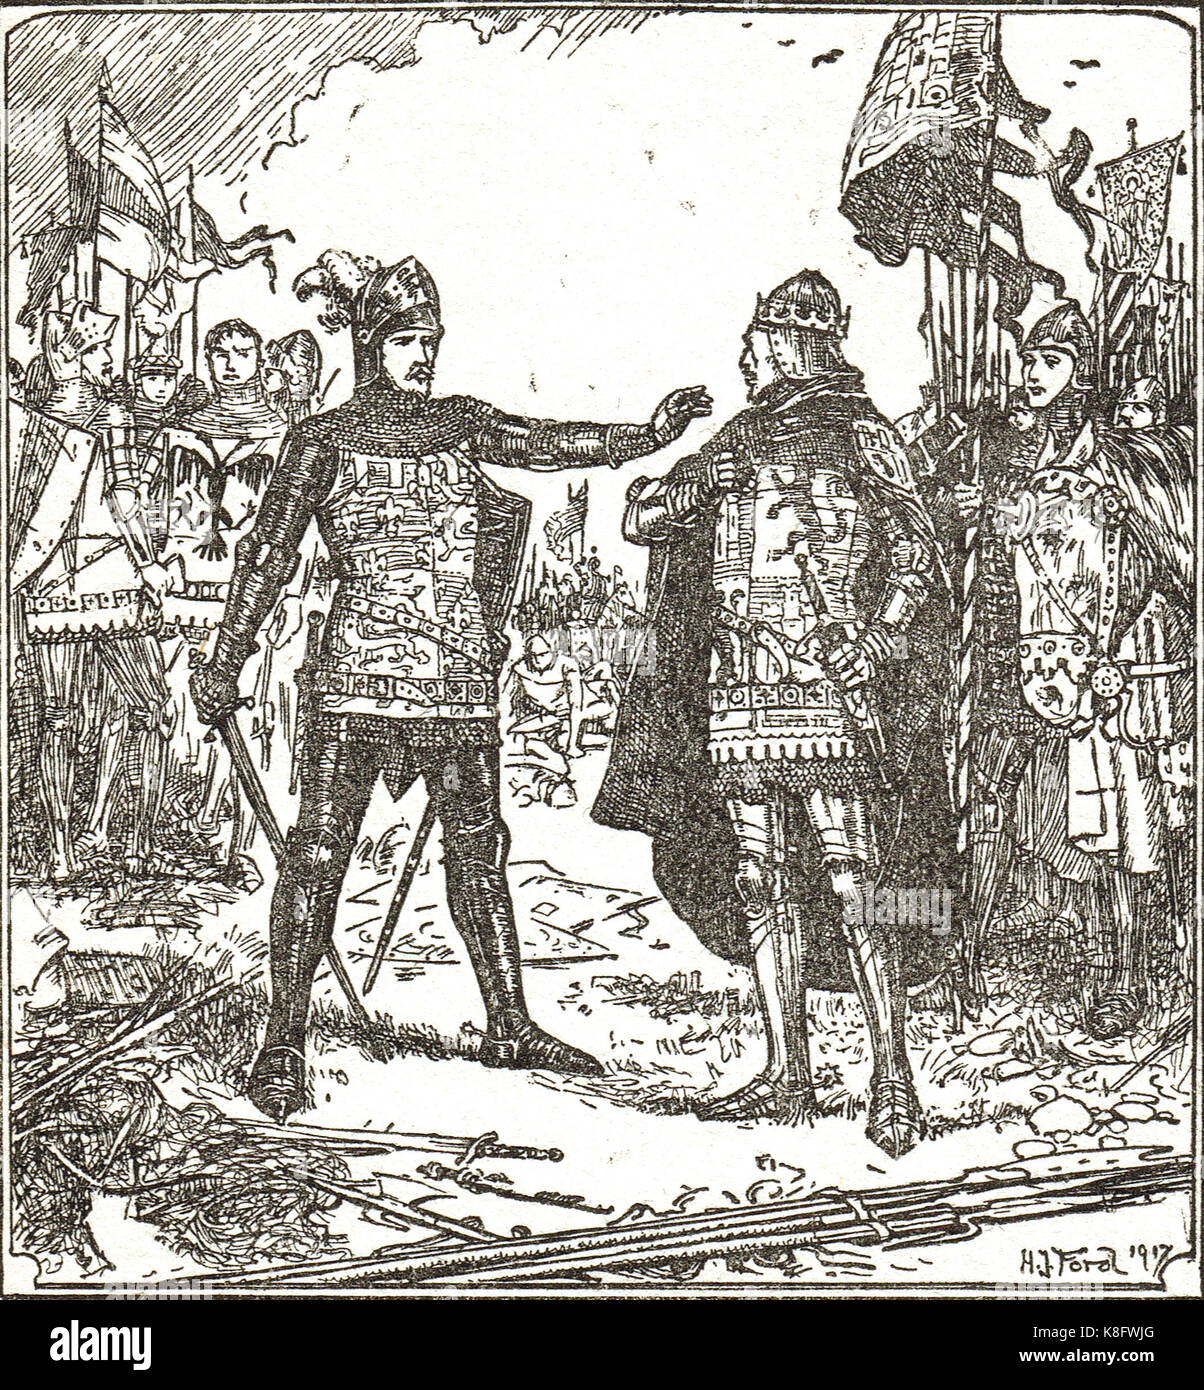 The Black Prince, Edward of Woodstock, refuses to hand over du Guesclin to Don Pedro, Battle of Nájera, 3 April - Stock Image